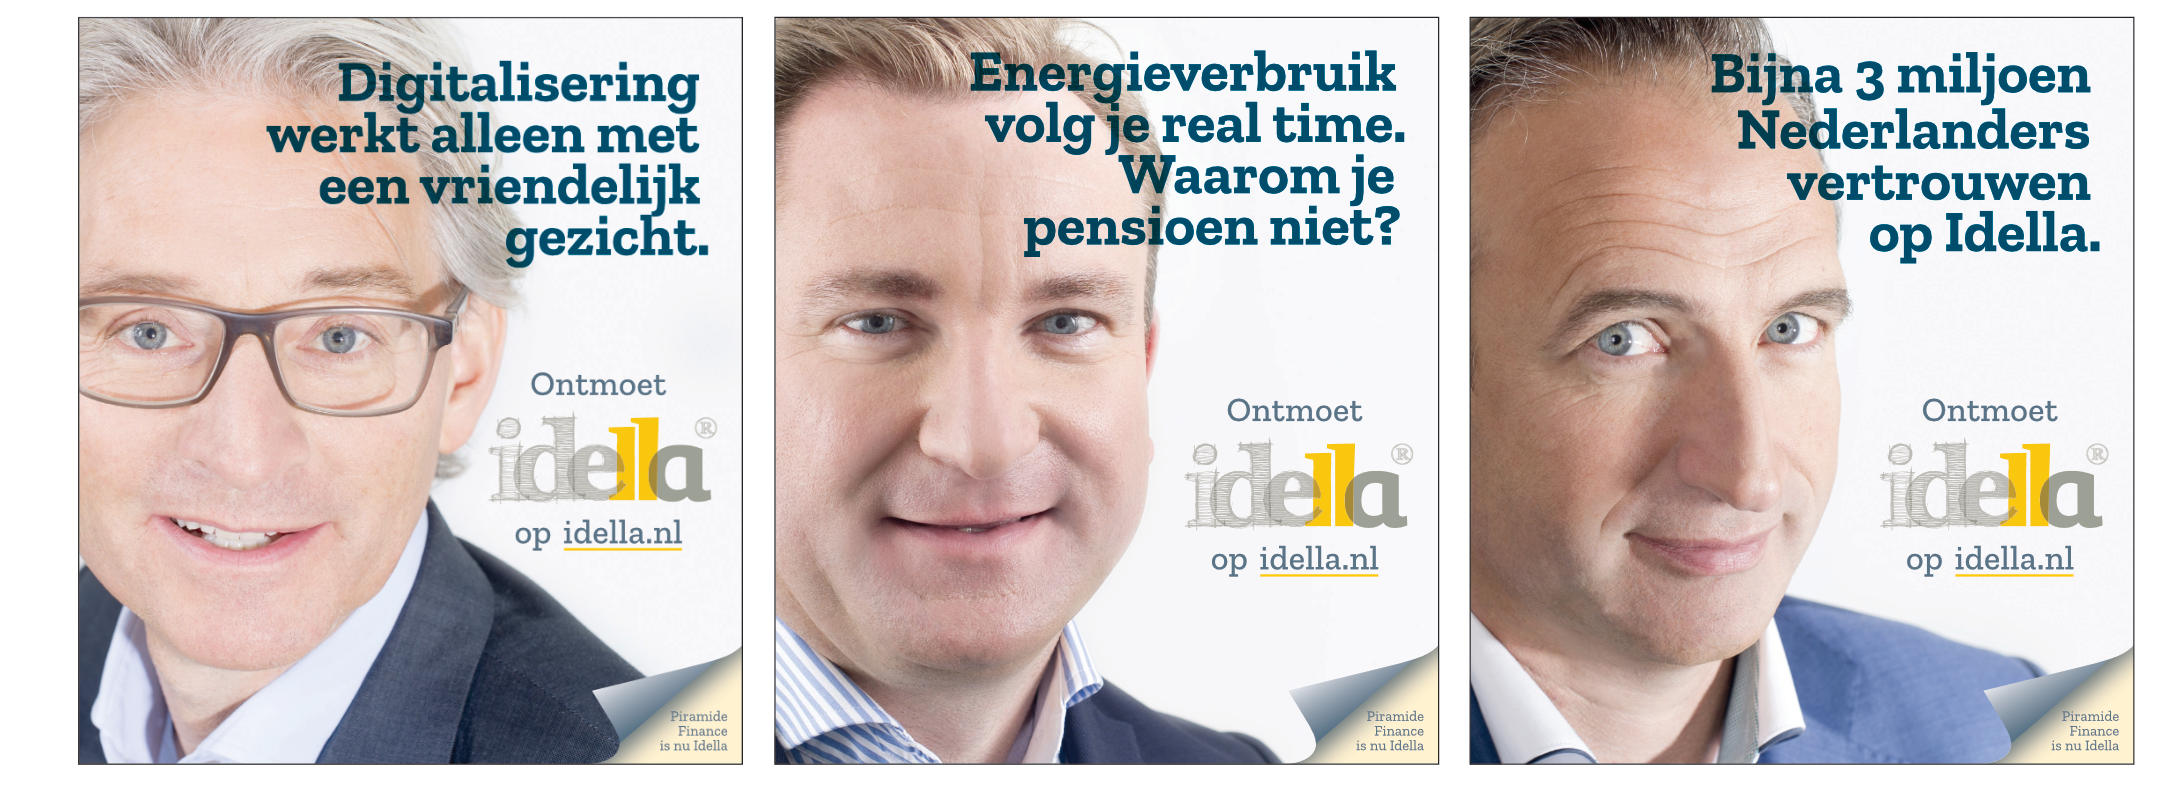 Idella advertenties